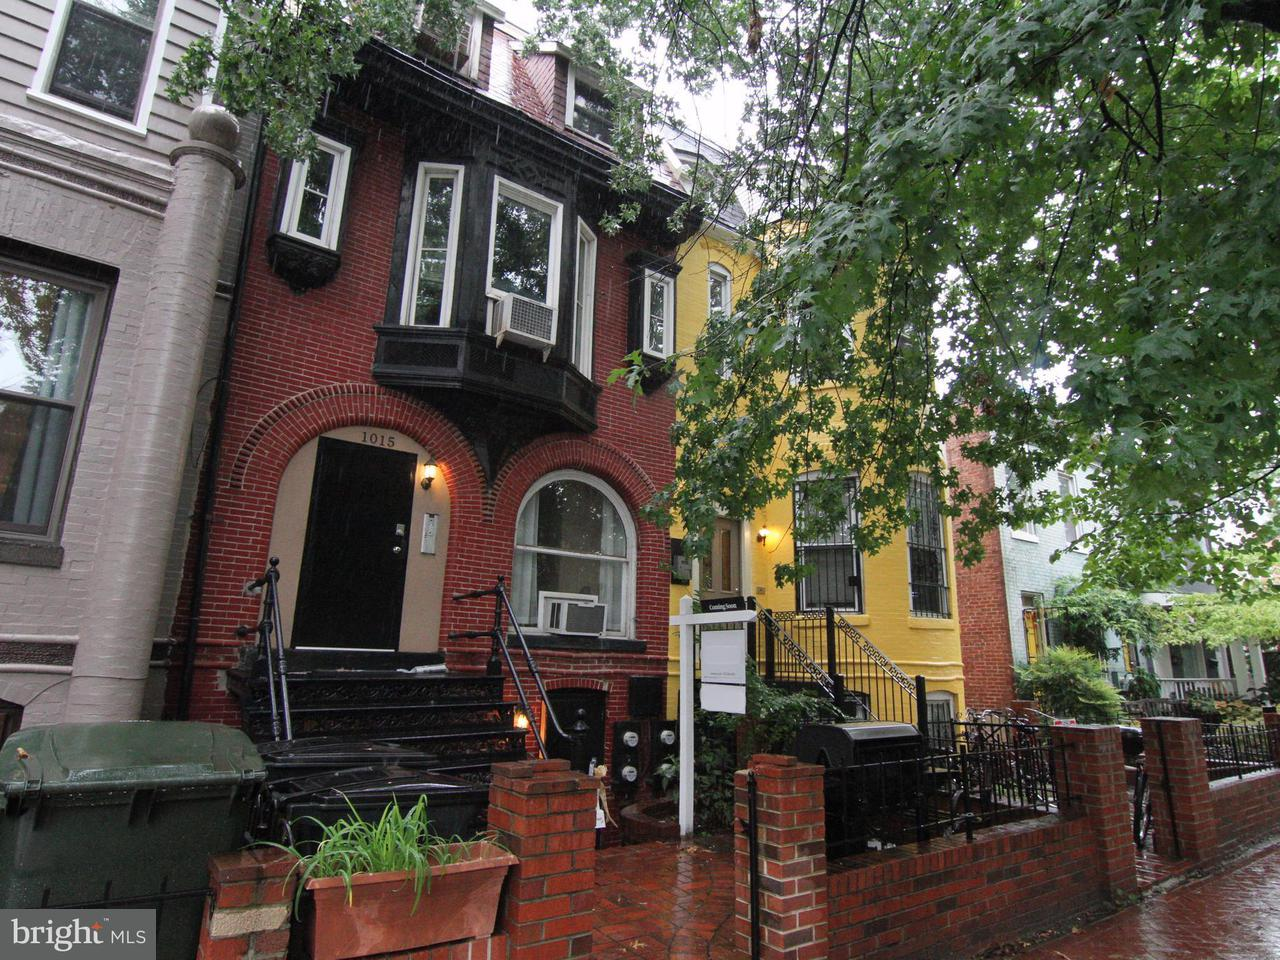 Multi-Family Home for Sale at 1015 P ST NW 1015 P ST NW Washington, District Of Columbia 20001 United States